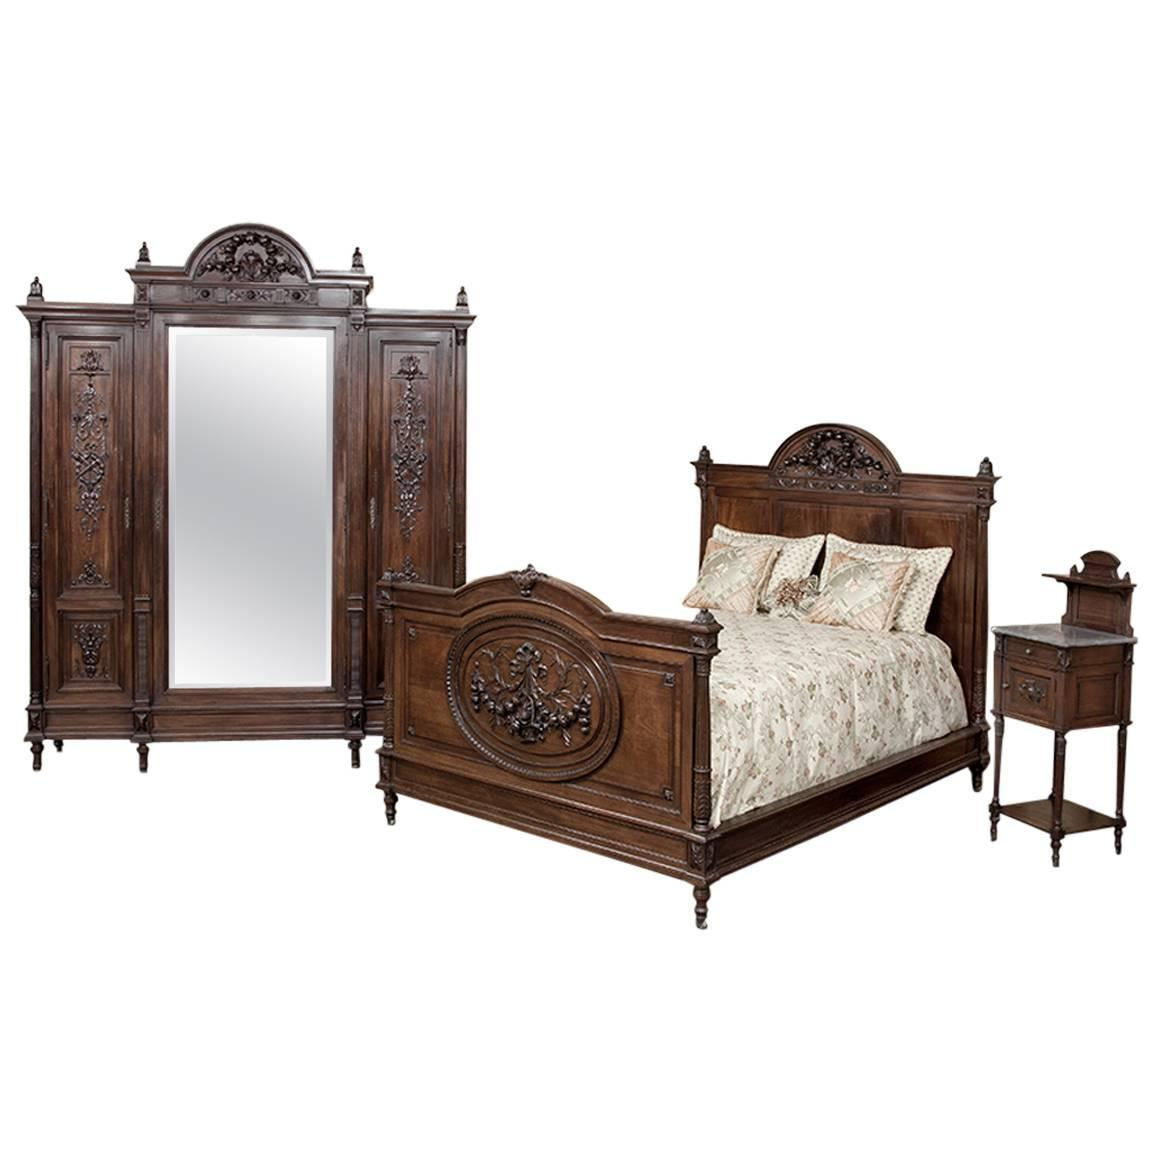 19th Century Neoclassical Mahogany Bedroom Set At 1stdibs: century bedroom furniture